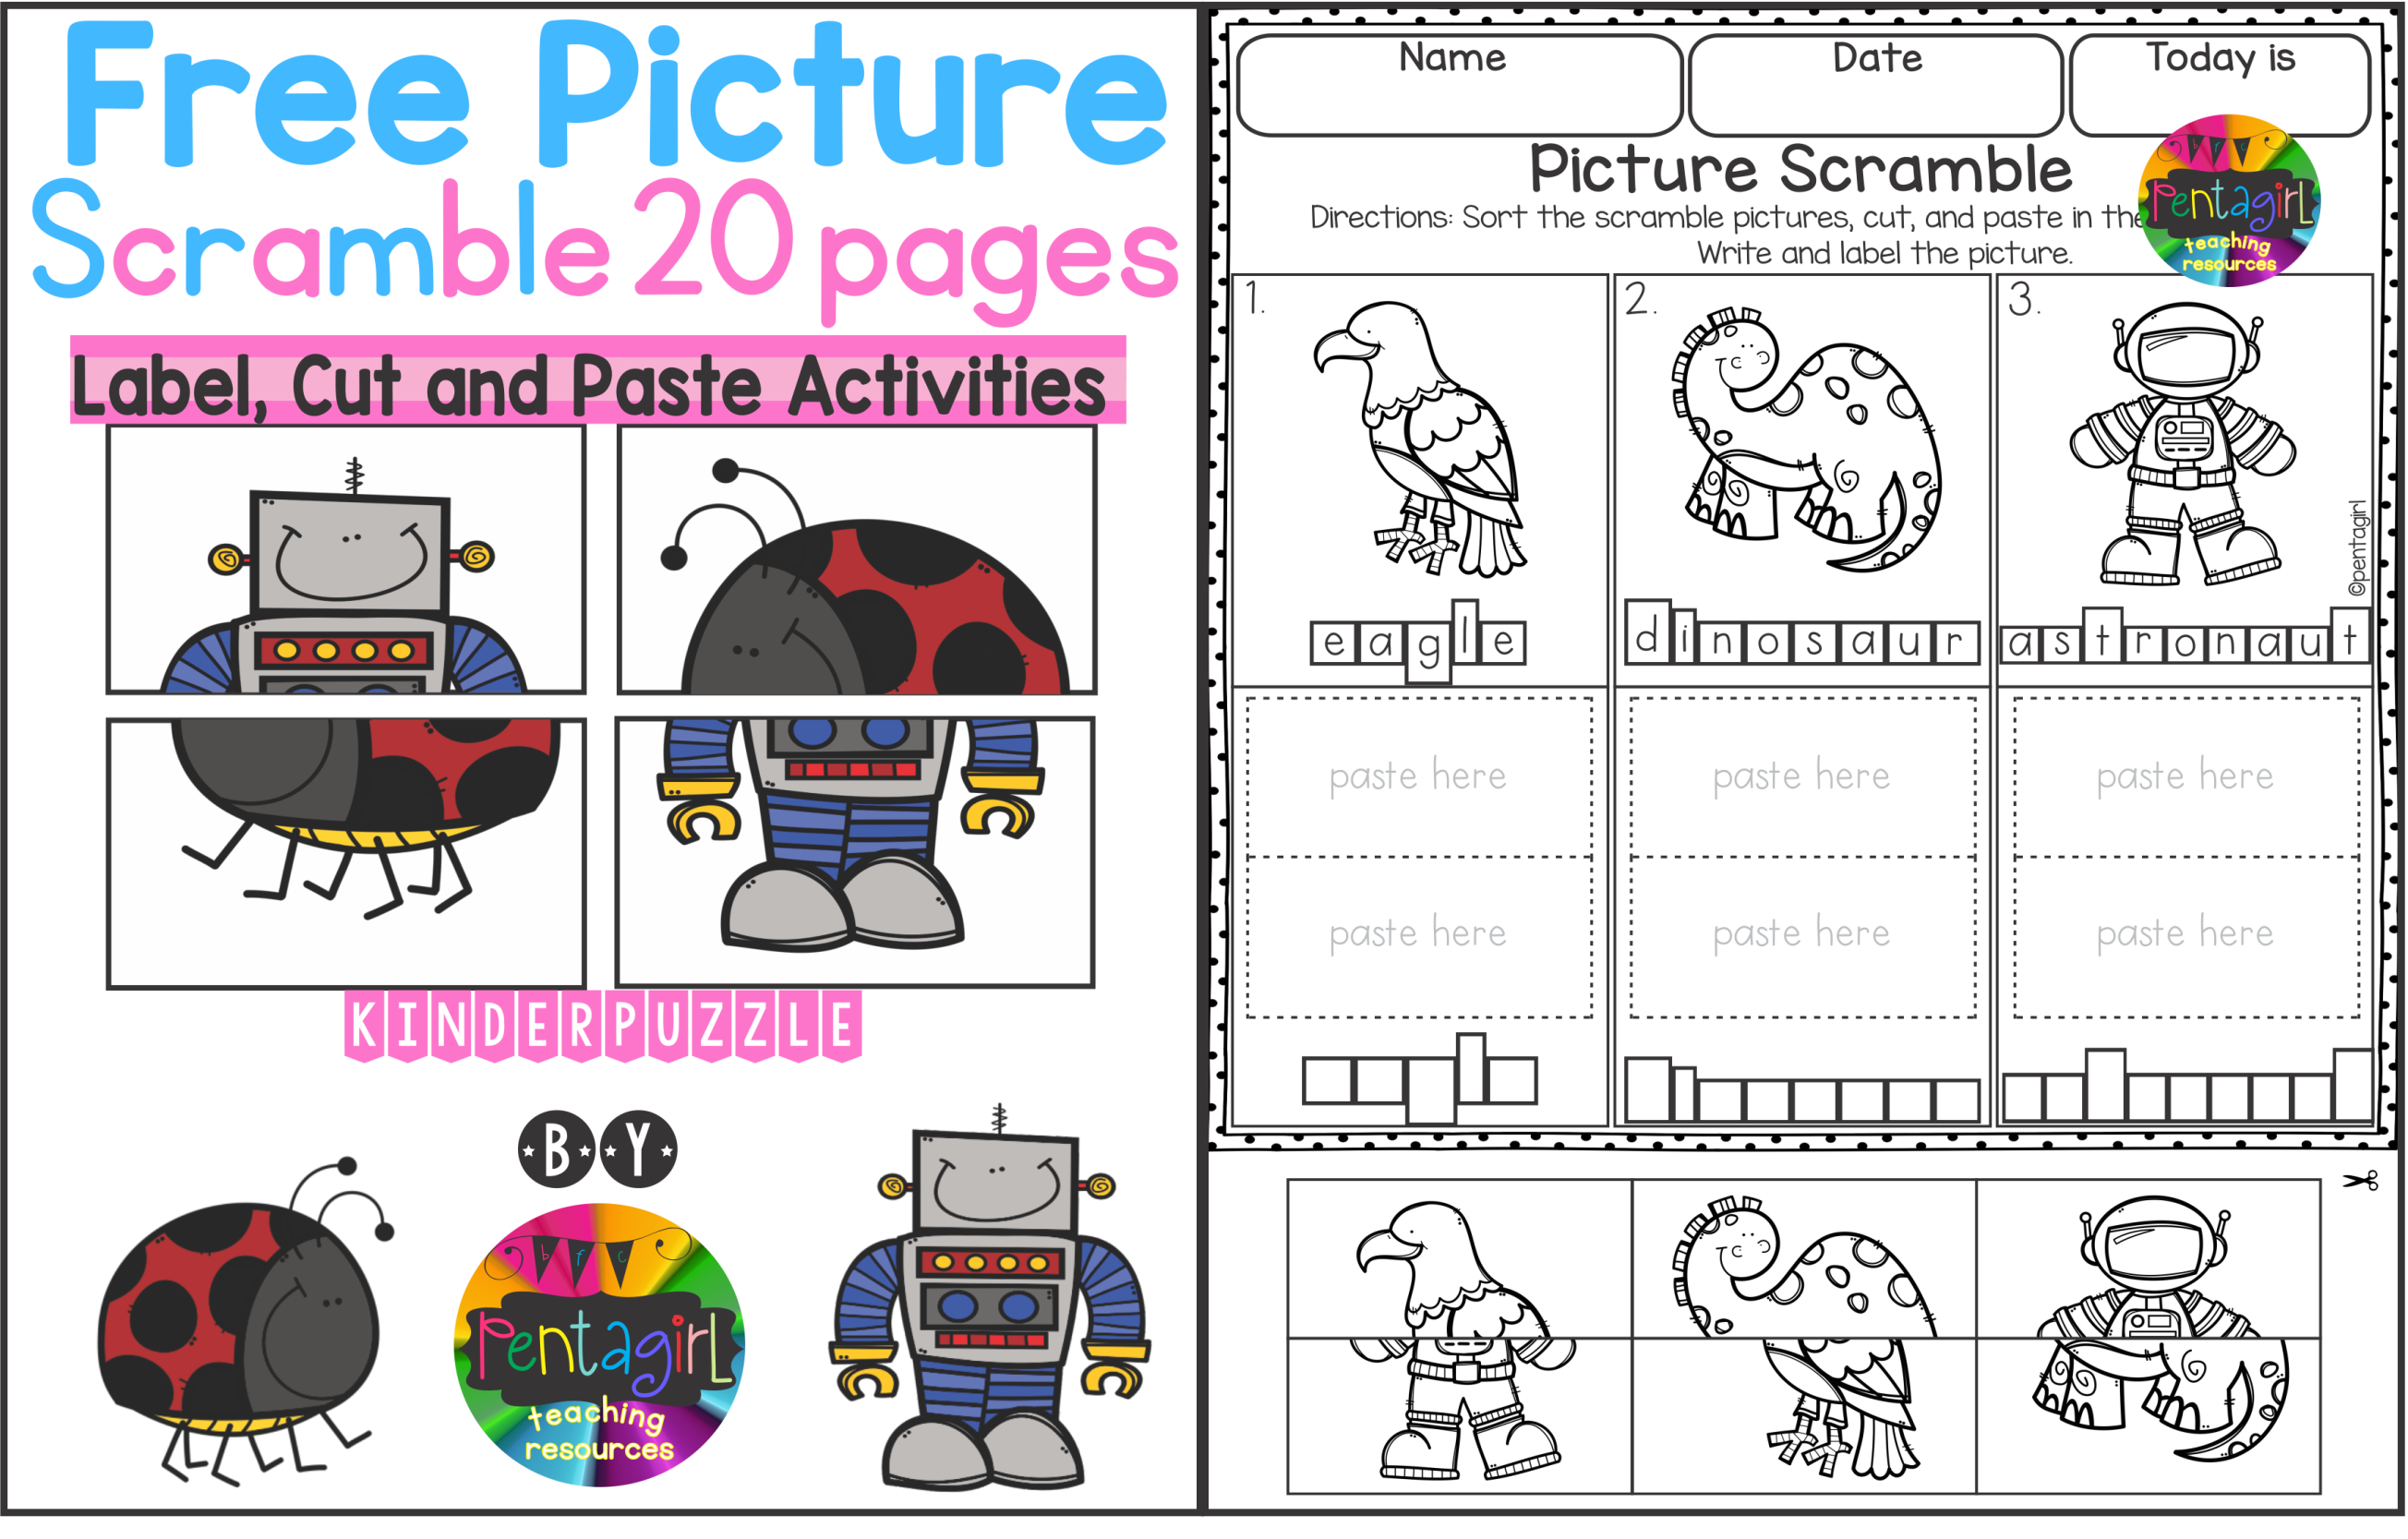 Free Kinder Picture Scramble 20 Pages